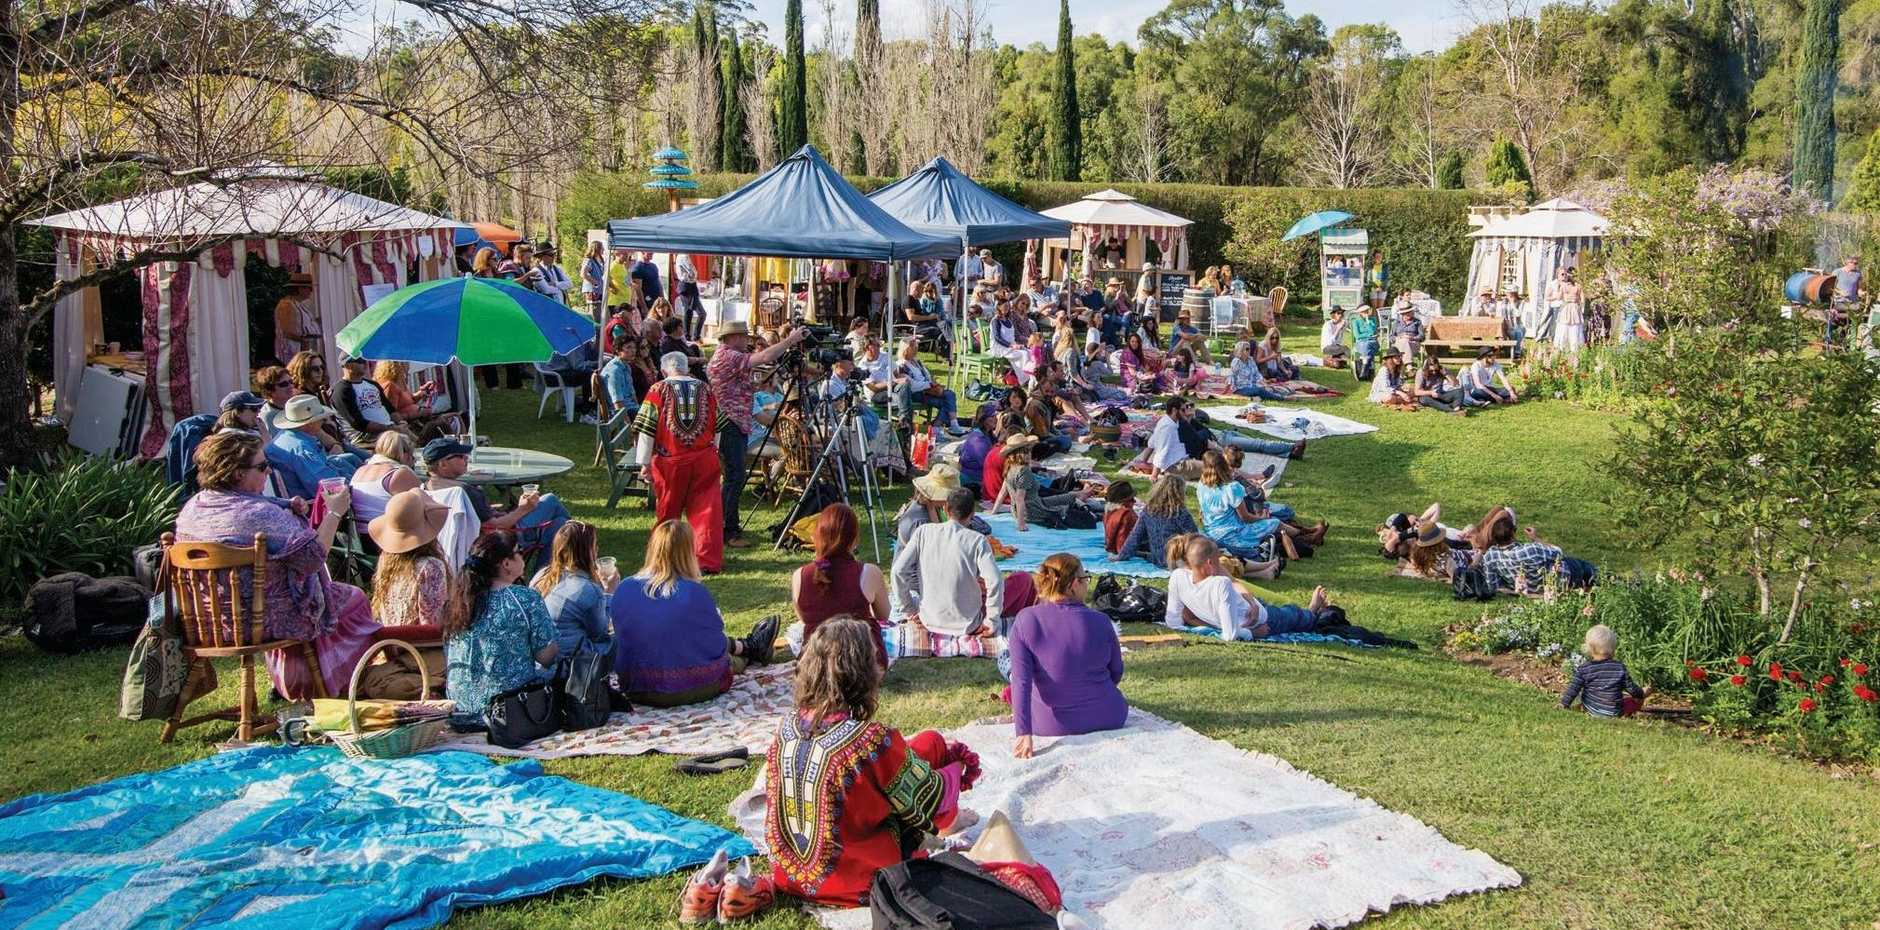 GARDEN OF LIGHT: Starting with live music at Flutterbucks on Friday, the O'Heart Festival will offer an eclectic range of activities throughout Tylagum village .